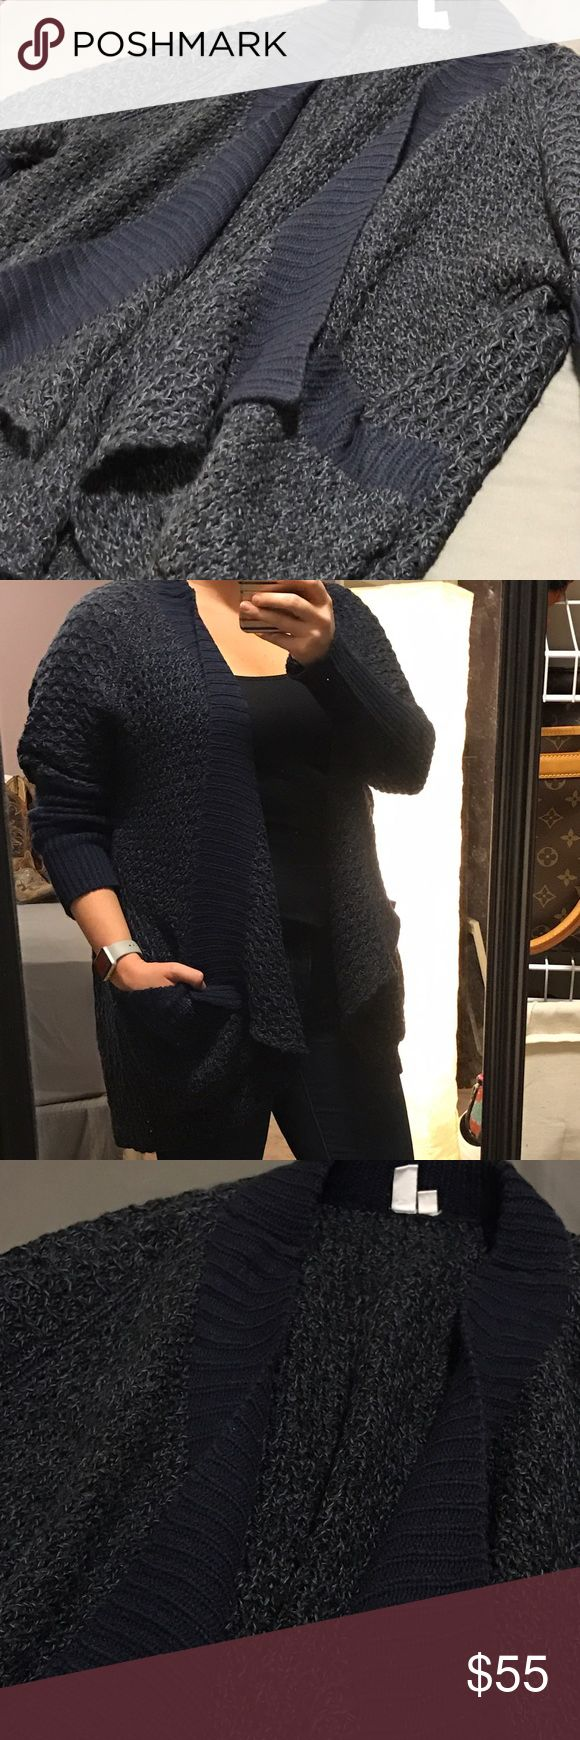 MTLA chunky knit sweater MTLA chunky knit sweater • navy blue with a lighter blue • soooo cozy! • from Stitch Fix! Price is firm on this one because it's so nice! Make a fantastic coat for cold weather! Sweaters Shrugs & Ponchos